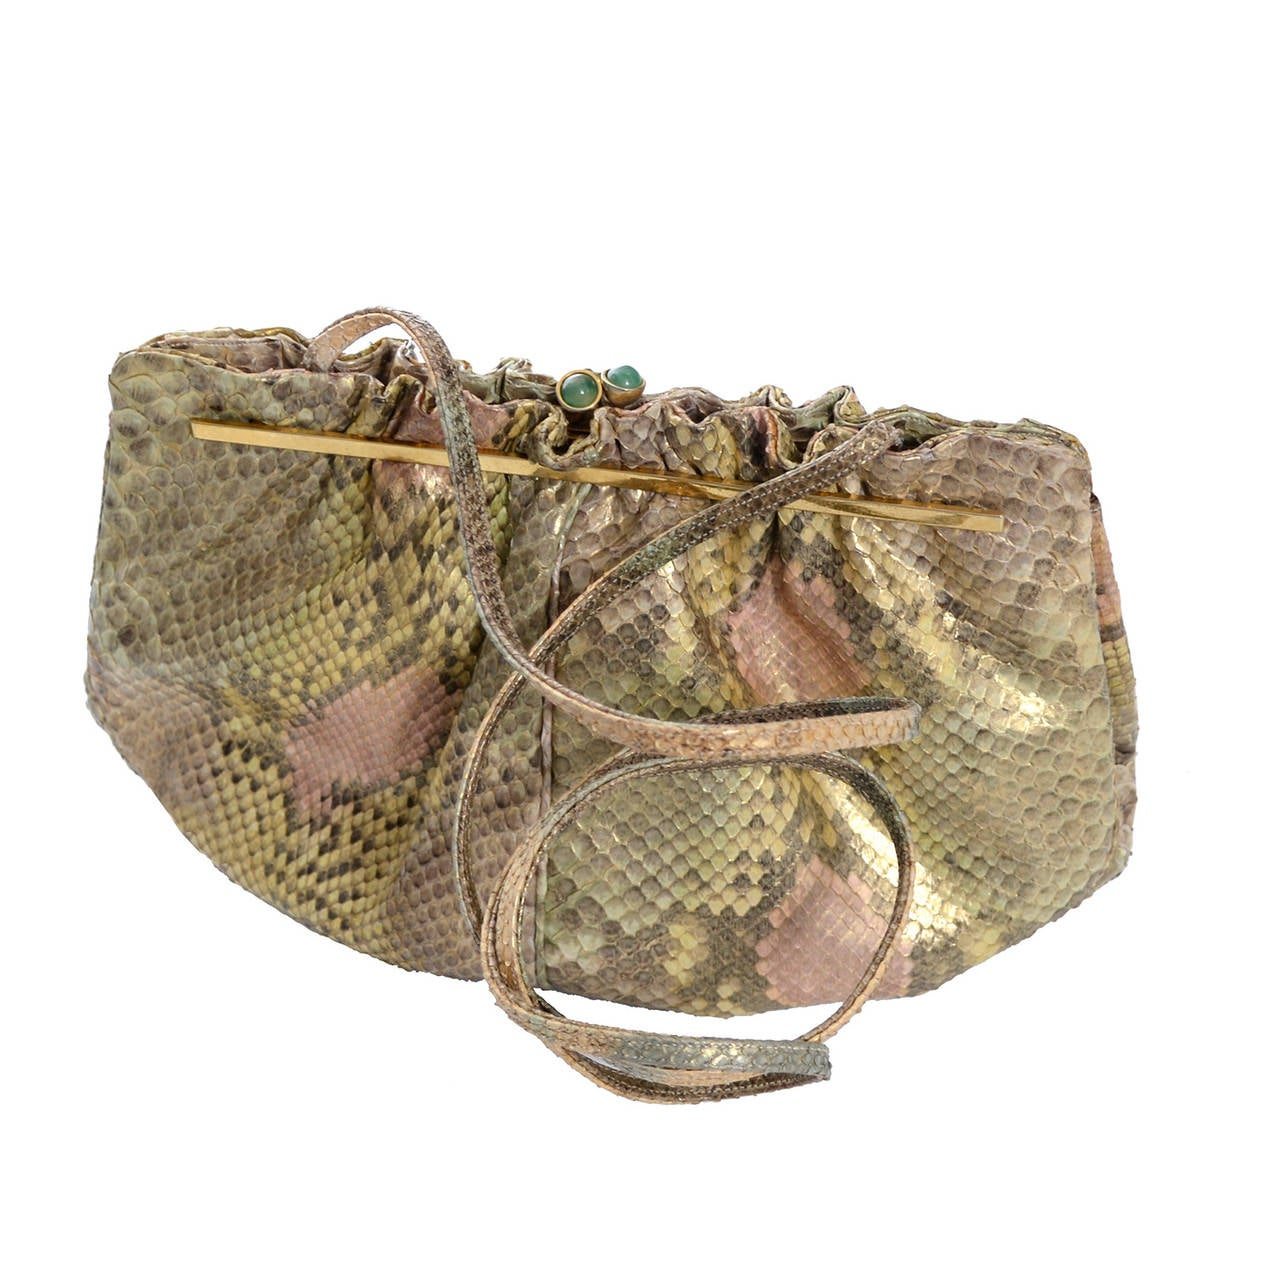 Judith Leiber Vintage Python Snakeskin Handbag Jeweled Clasp Coin Purse Mirror In Excellent Condition For